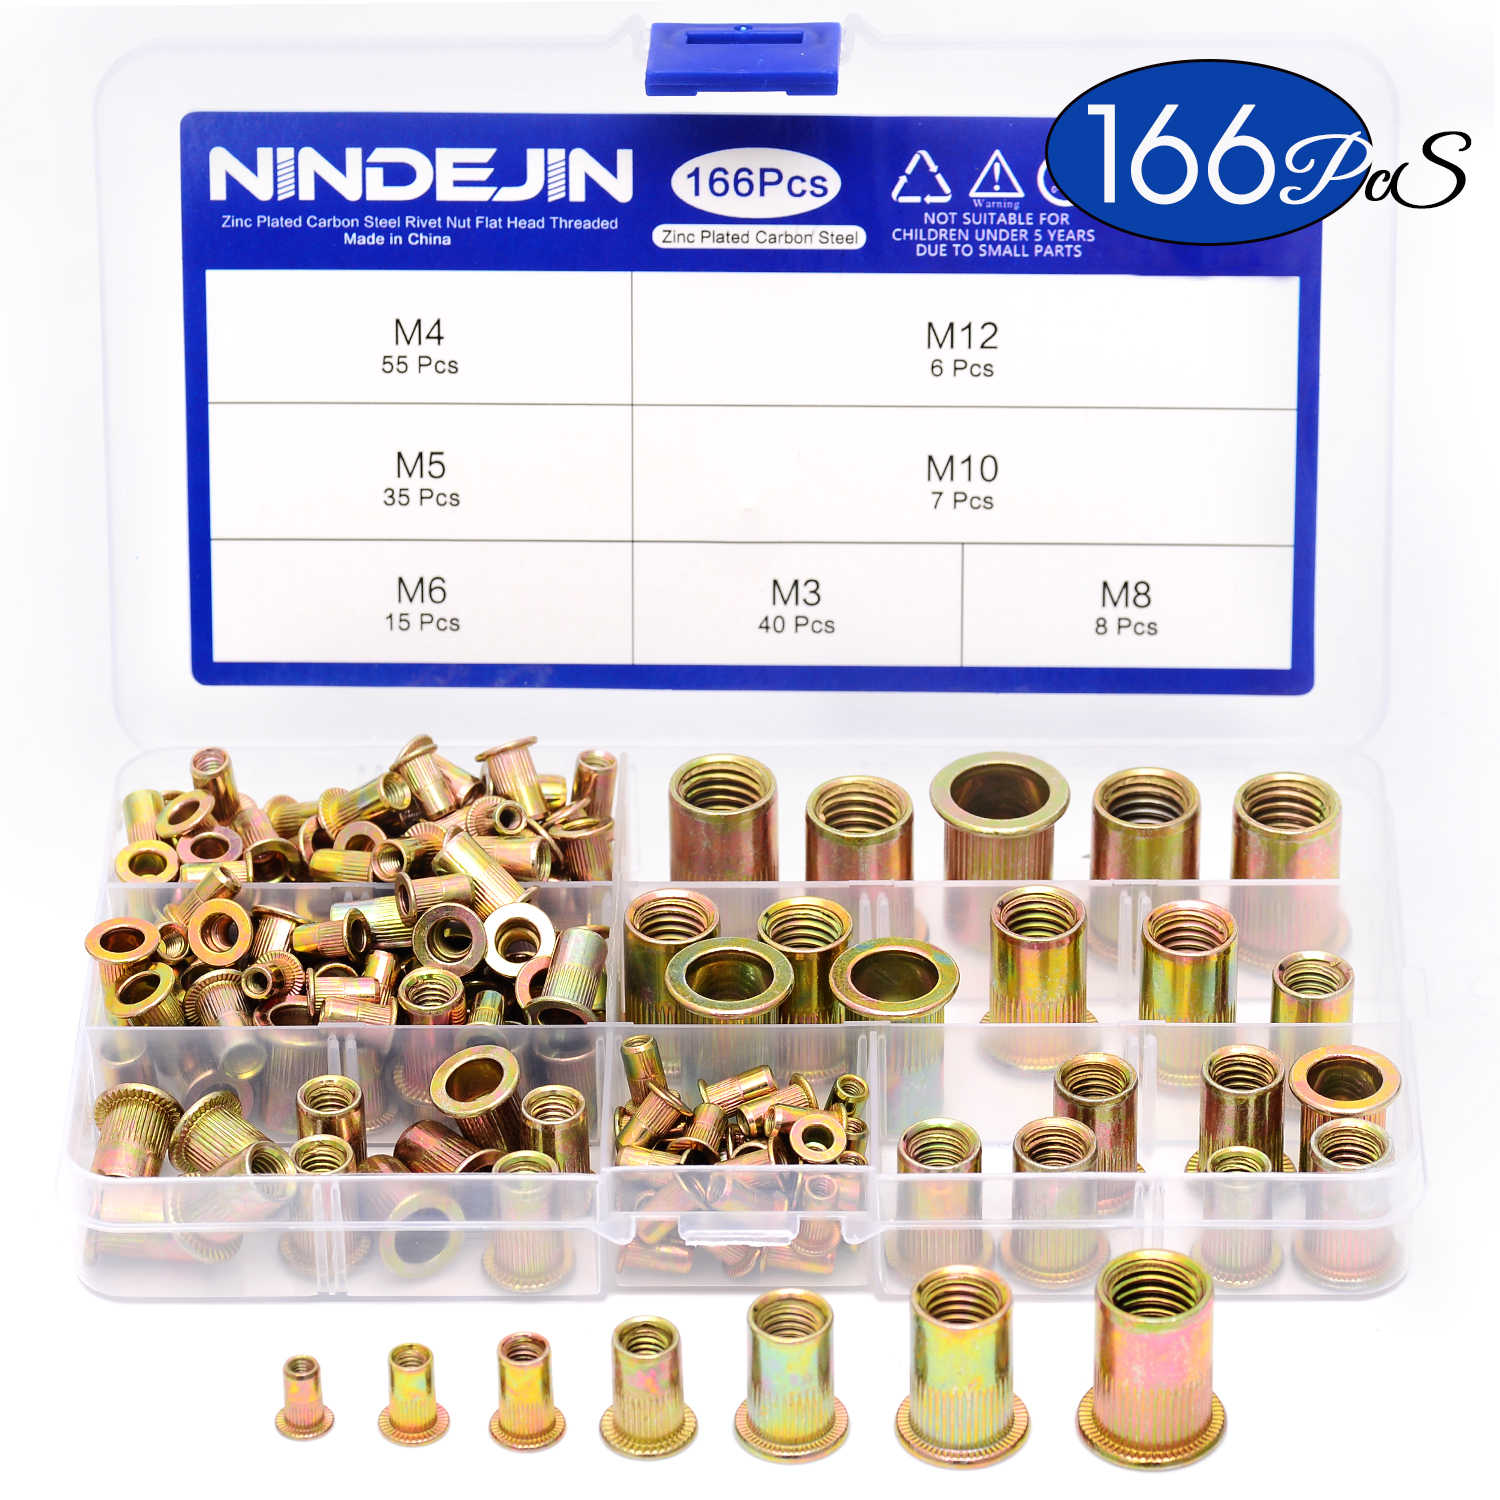 NINDEJIN 166pcs/set Mixed Carbon Steel Rivet Nut M3 M4 M5 M6 M8 M10 M12 Nut Zinc Plated Flat Head Threaded Insert Nut Kit